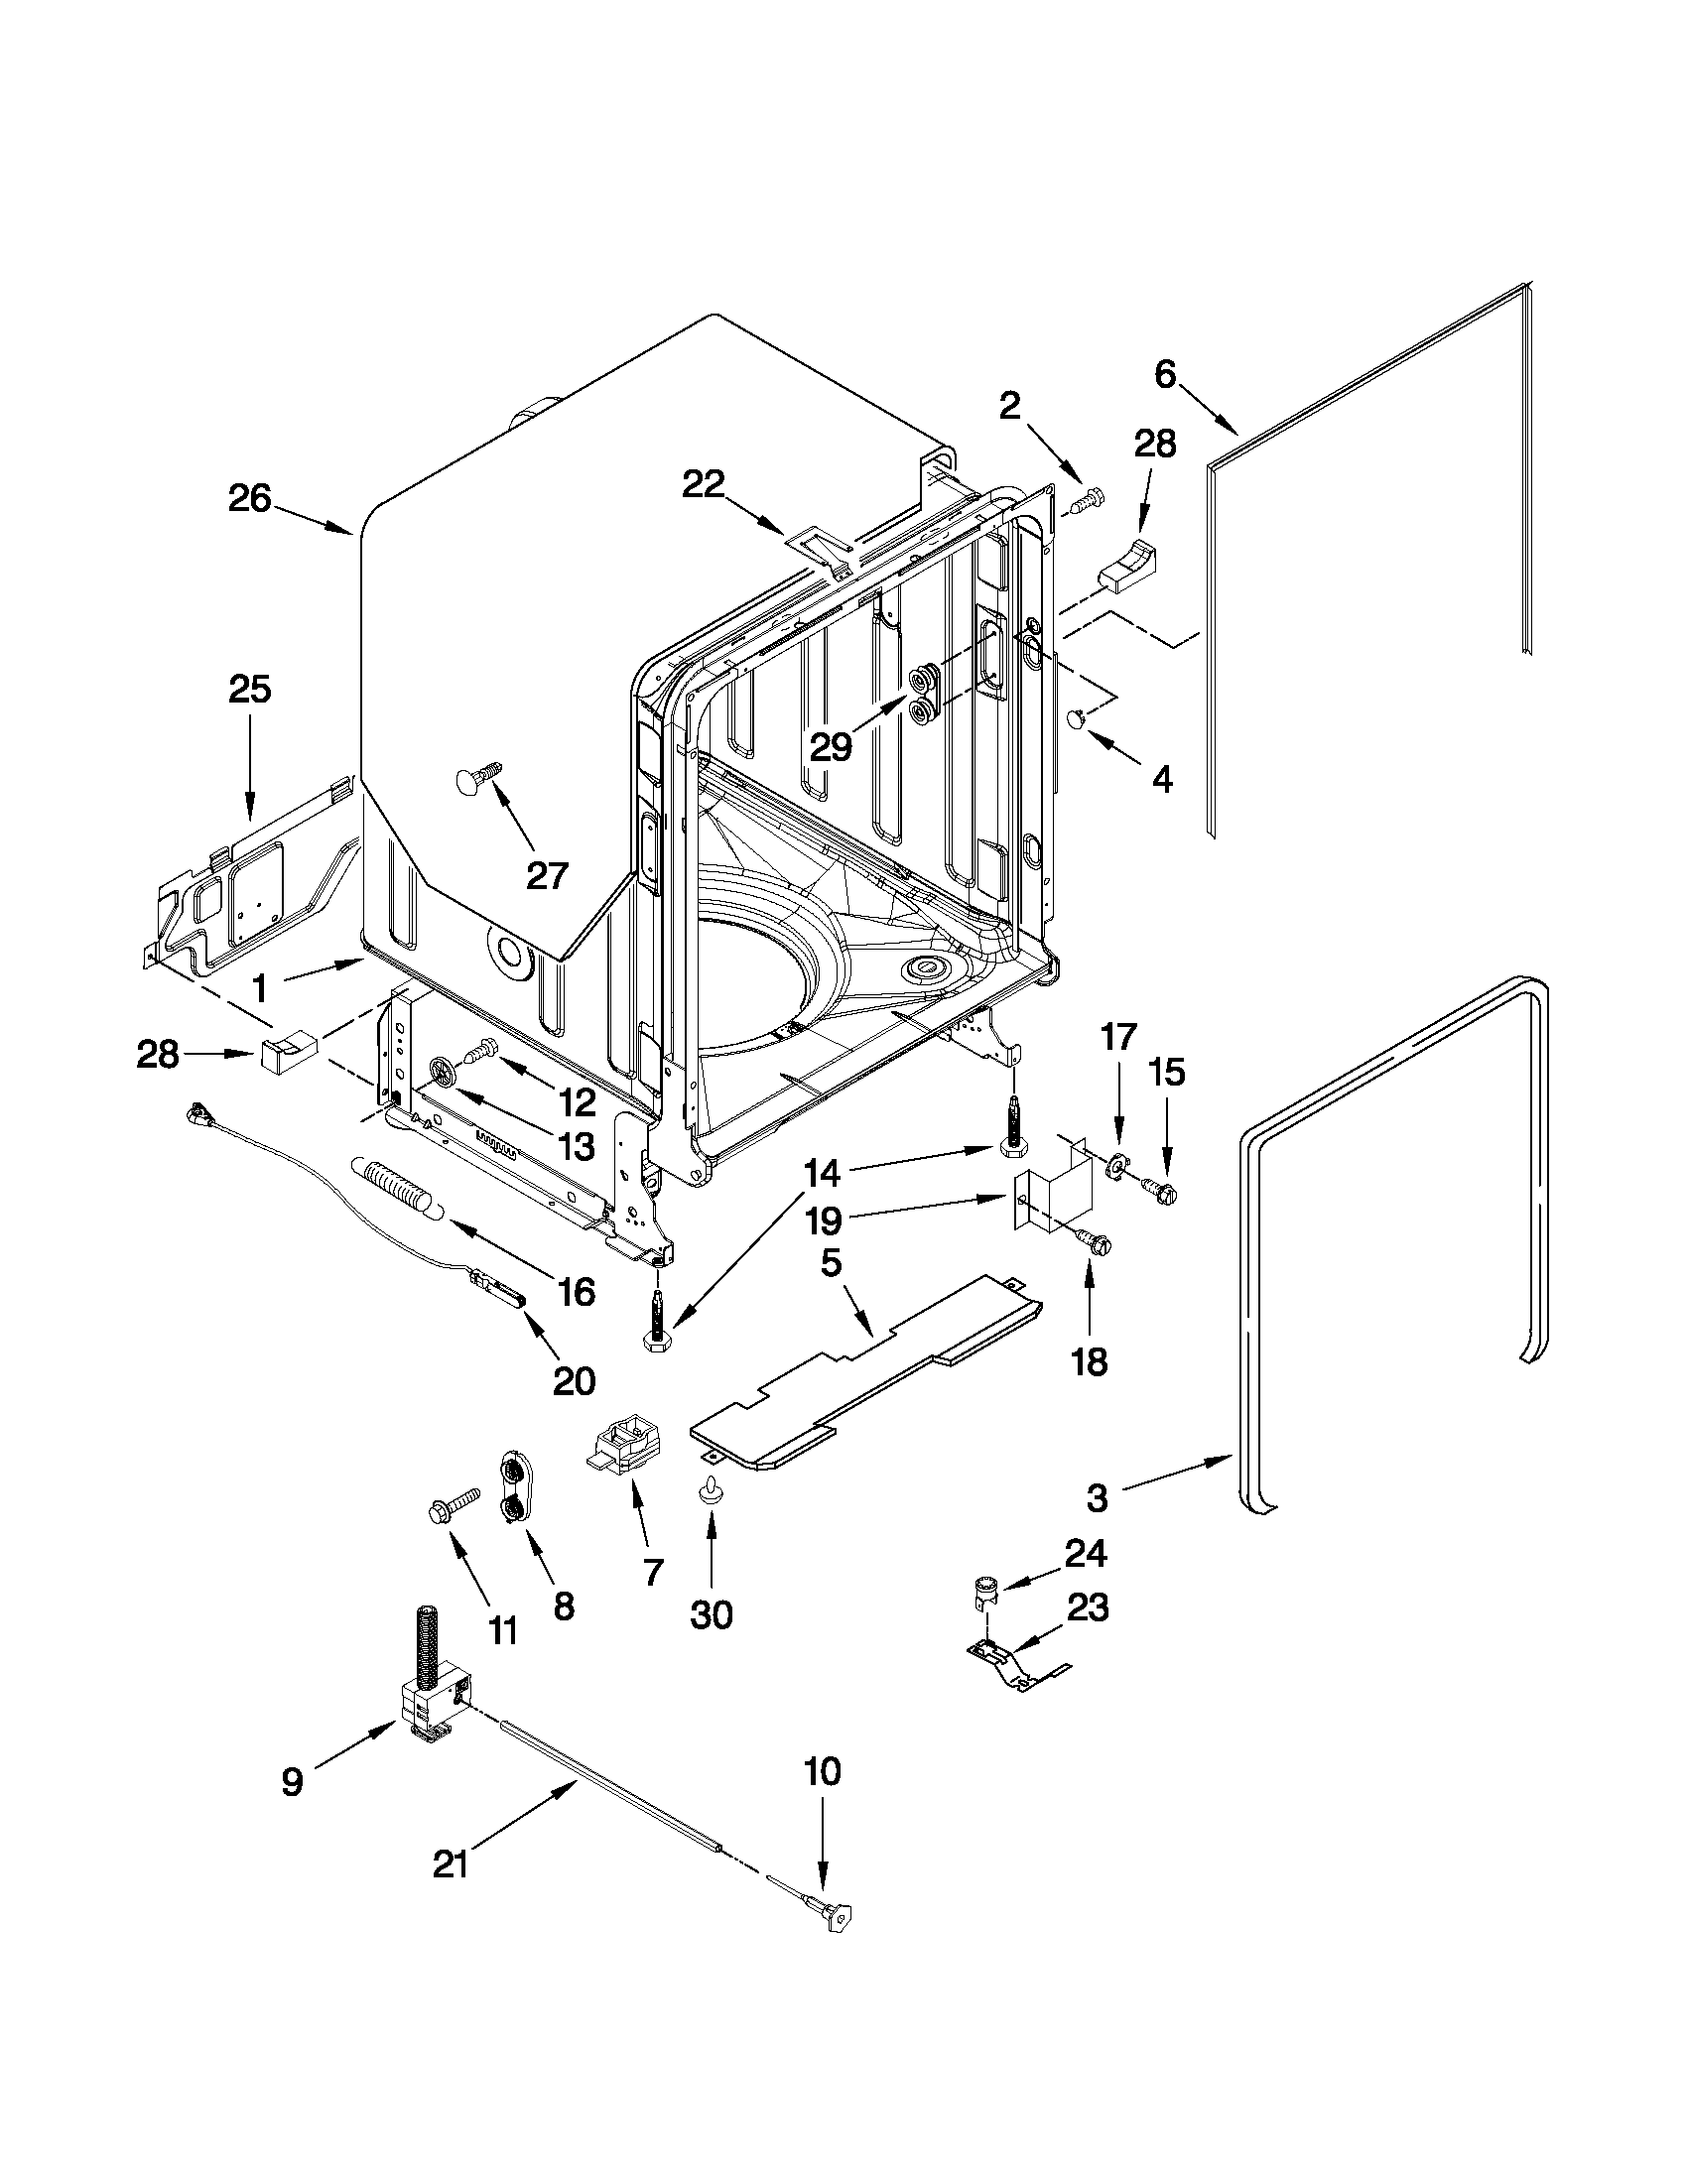 Tub And Frame Parts Diagram Parts List For Model 66513964k014 Kenmore Elite Parts Dishwasher Parts Searspartsdirect Kenmore Elite Kenmore Dishwasher Parts